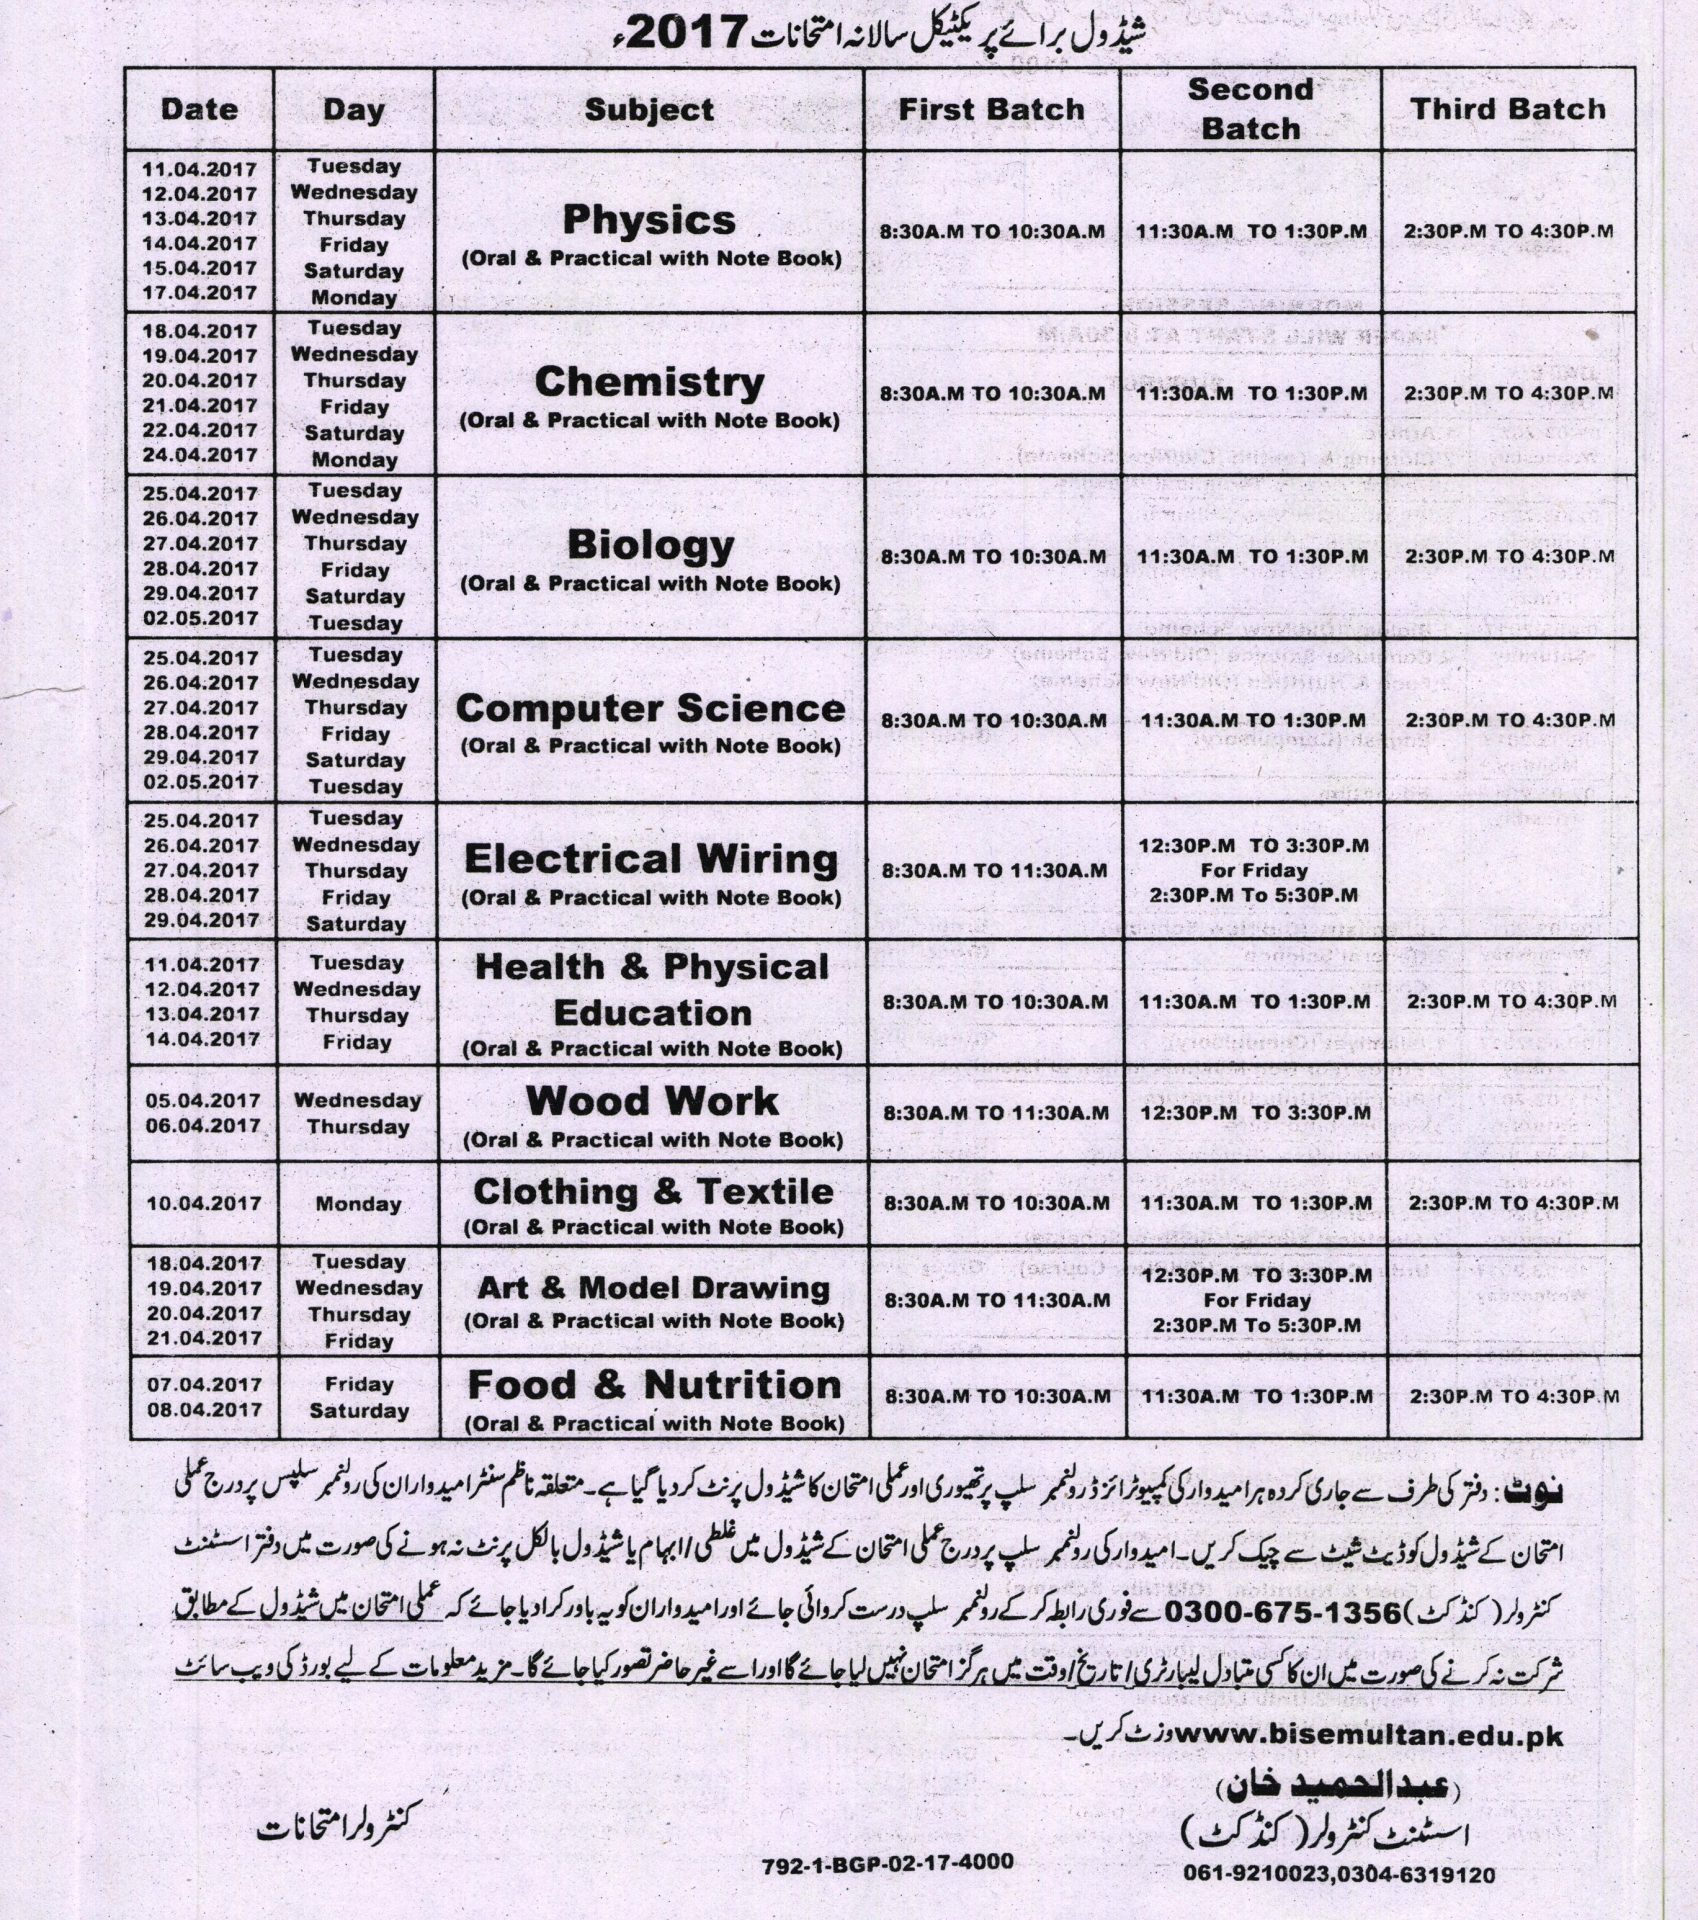 Date Sheet of 10th Class 2017 BISE Multan Board Practical